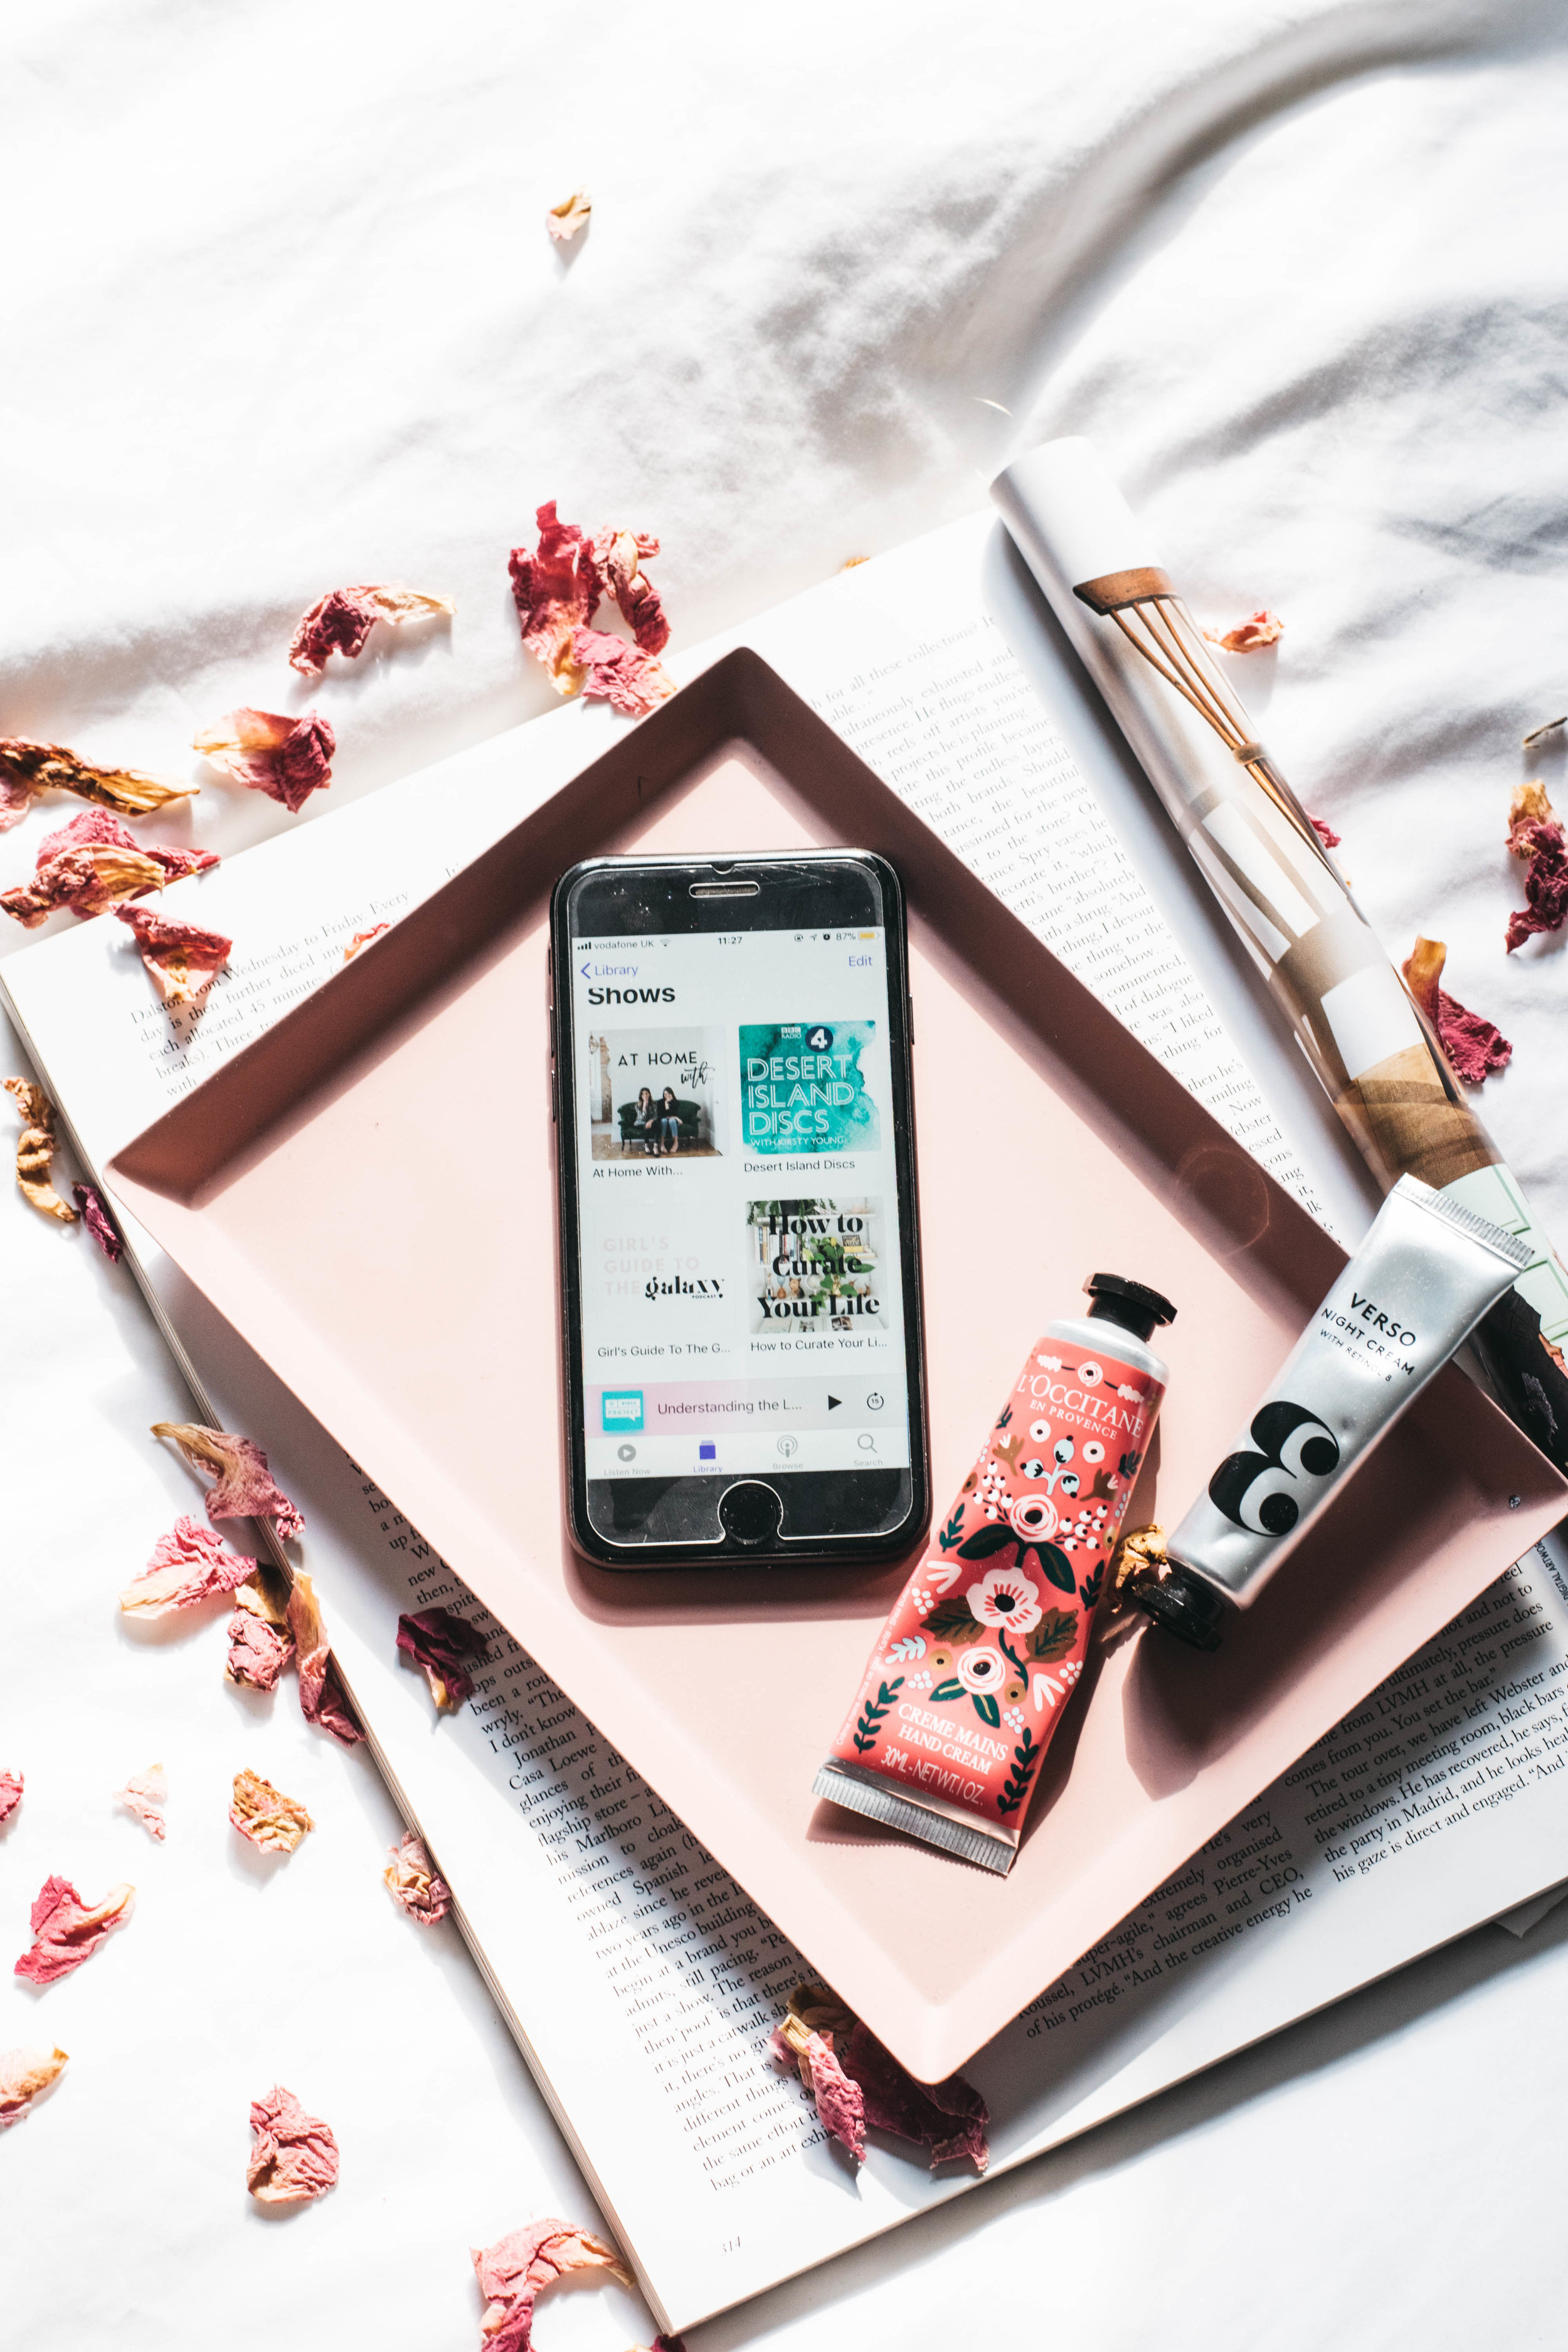 best podcasts 2018. Manchester, UK beauty and lifestyle blog. Uk travel blog. UK Beauty Blog. Manchester Beauty blog. UK Lifestyle blog. Manchester lifestyle blog. UK Fashion Blog. Manchester Fashion Blog. Ellie Dickinson. Ellie Grace. Ellie Grace Dickinson.